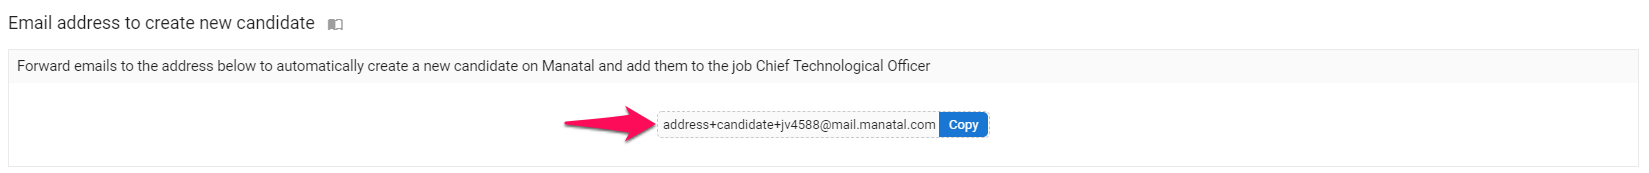 Receive Job Board Applications directly in Manatal 5